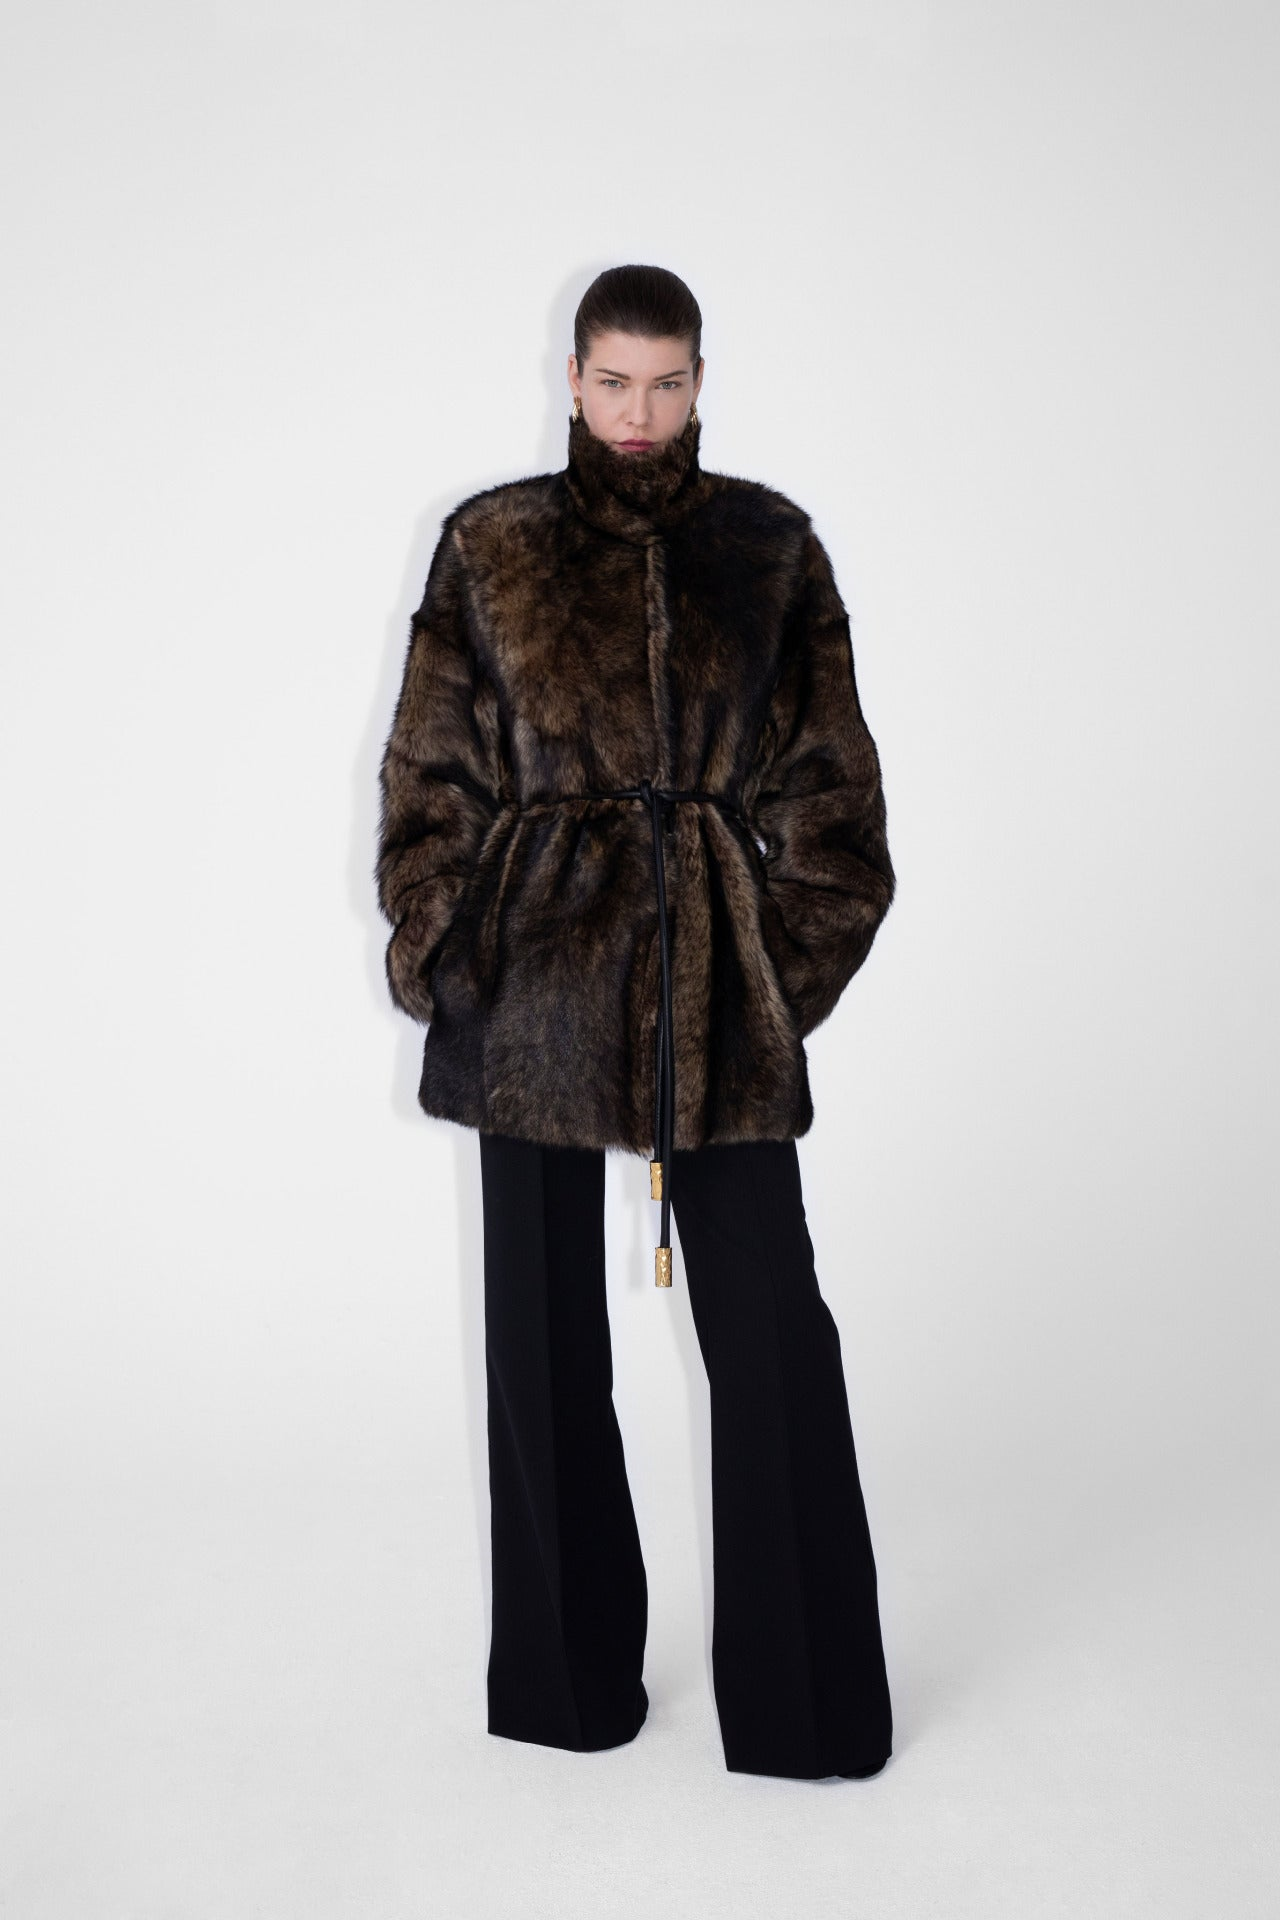 ESCADA Fall/Winter 2020 Fake fur coat with leather belt